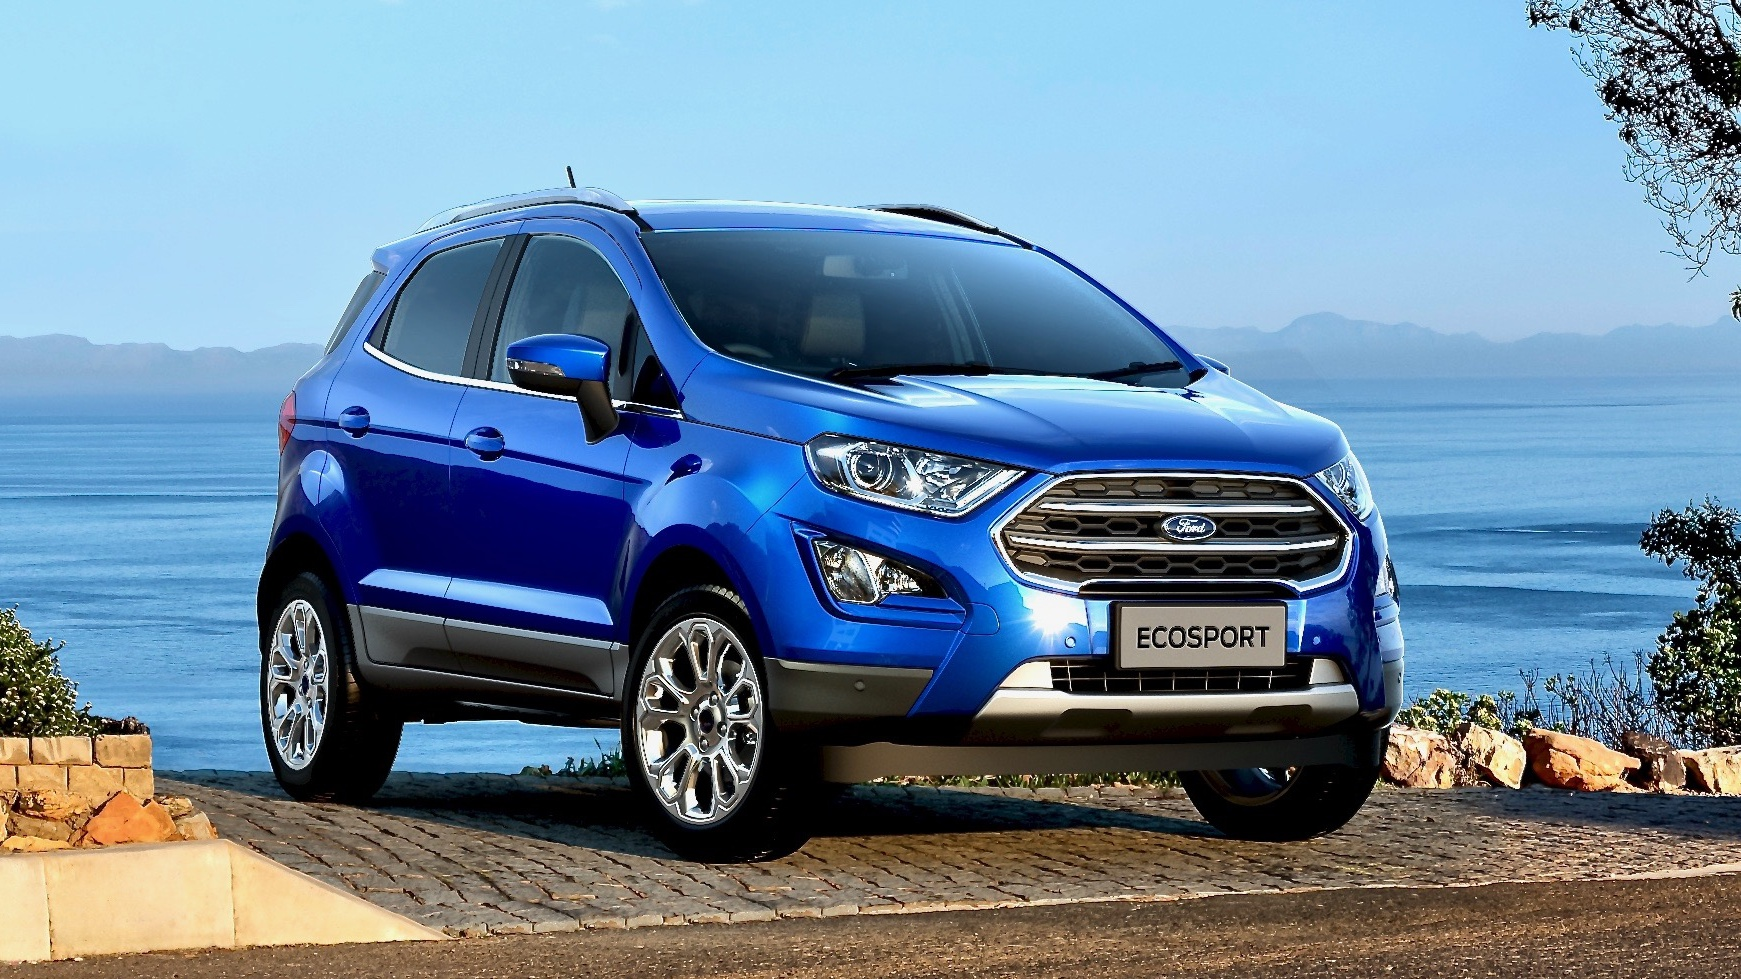 news ford australia reveals significantly updated ecosport for 2018. Black Bedroom Furniture Sets. Home Design Ideas